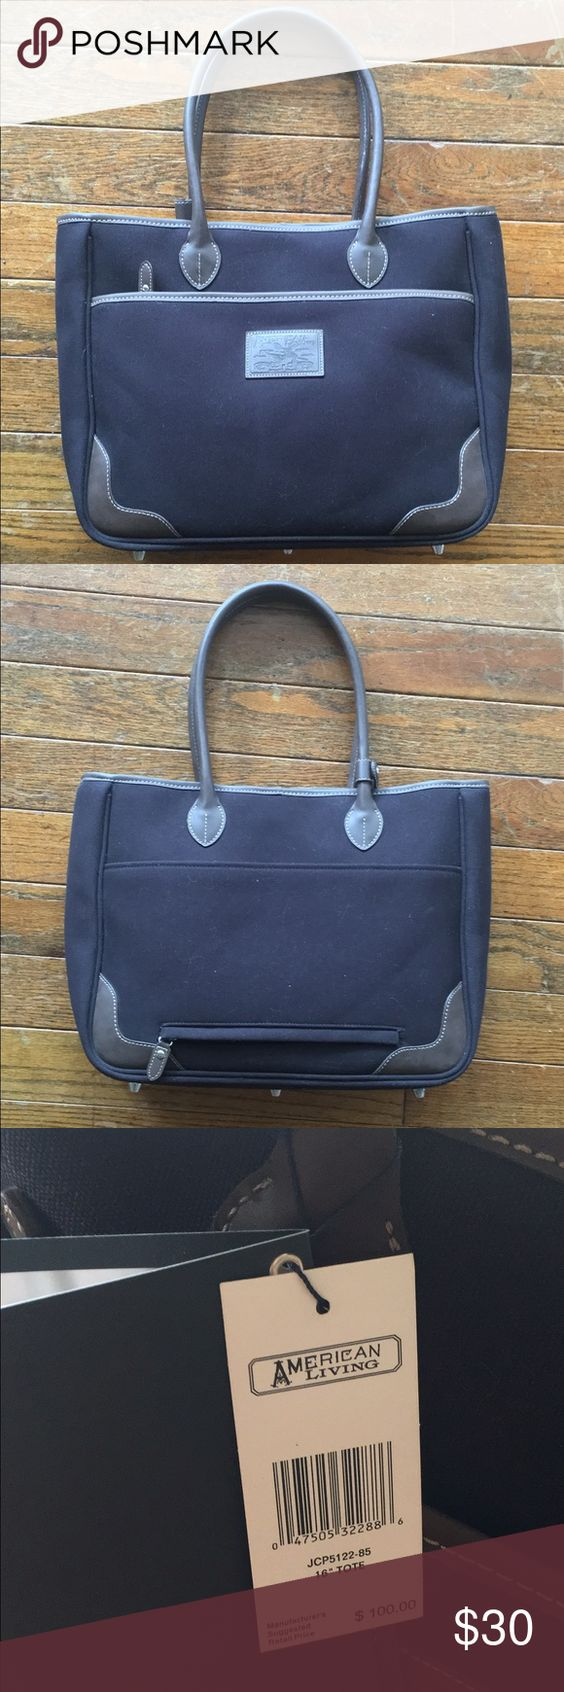 """Travel Tote/ Weekender 16"""" Travel Tote. New with tags, never used. Perfect for fall! Part of the American Living Mackenzie Luggage collection. American Living Bags Totes"""